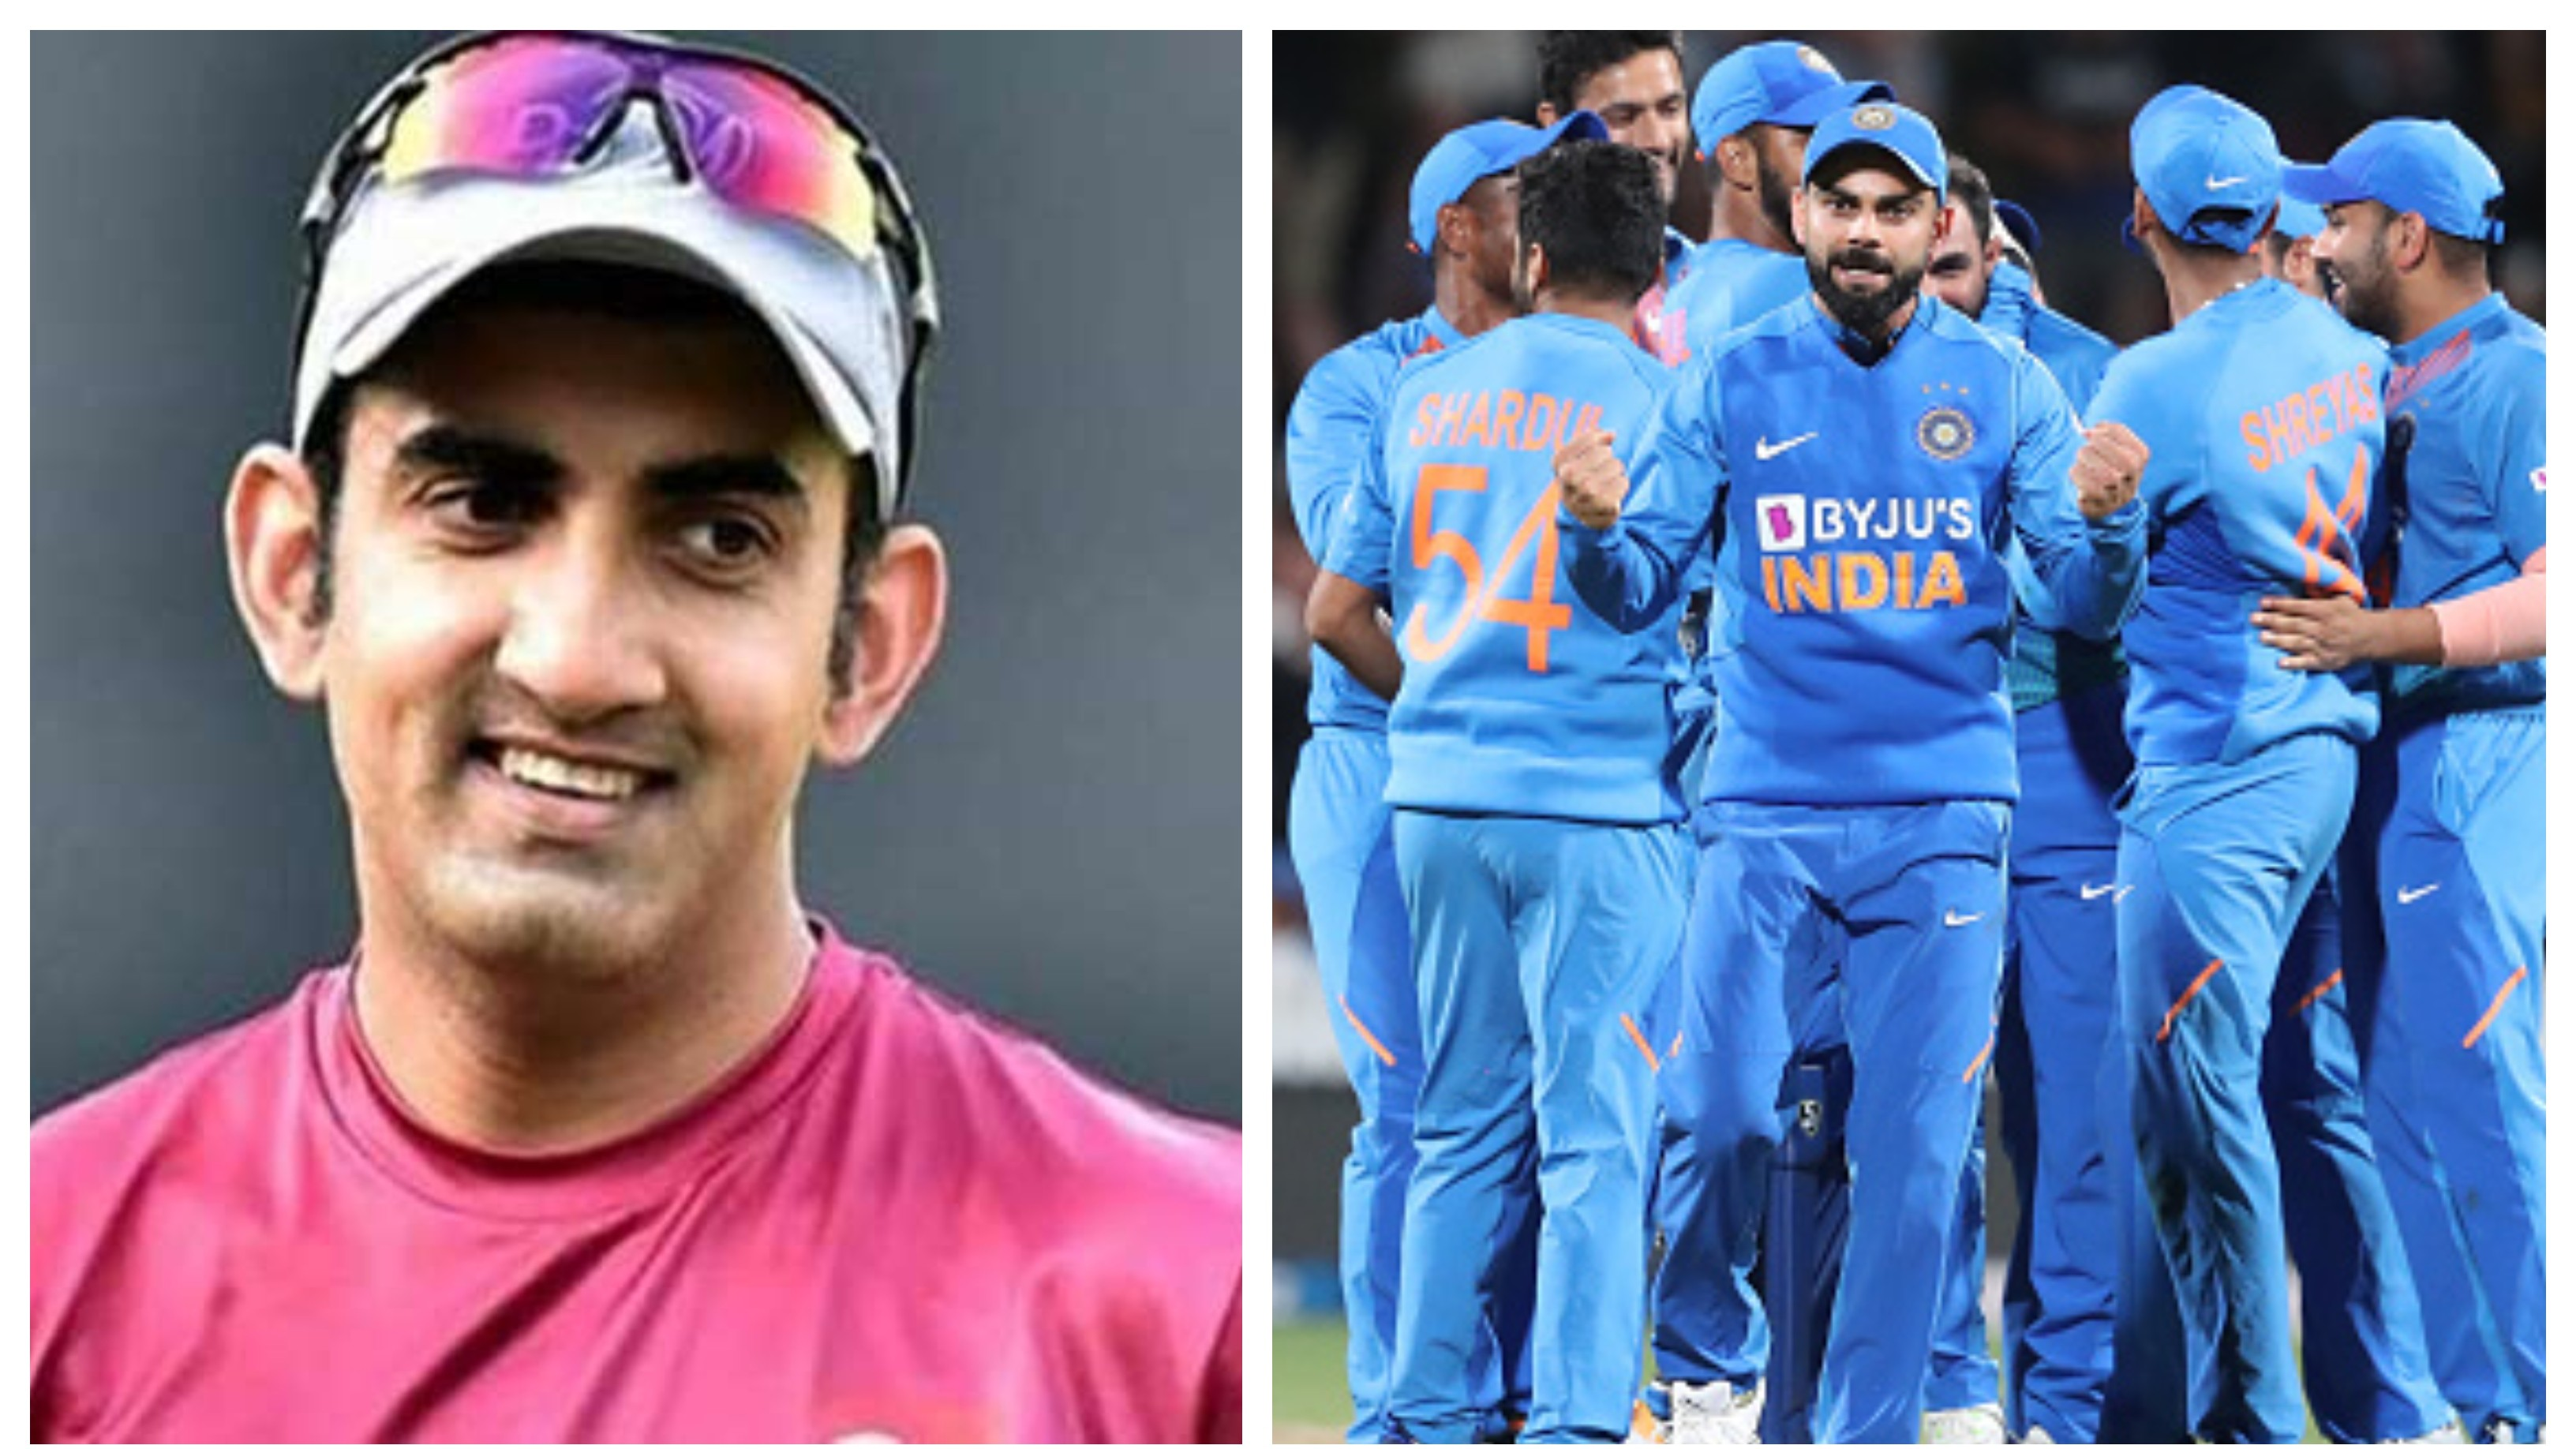 Gautam Gambhir hails fitness level of current Indian cricketers